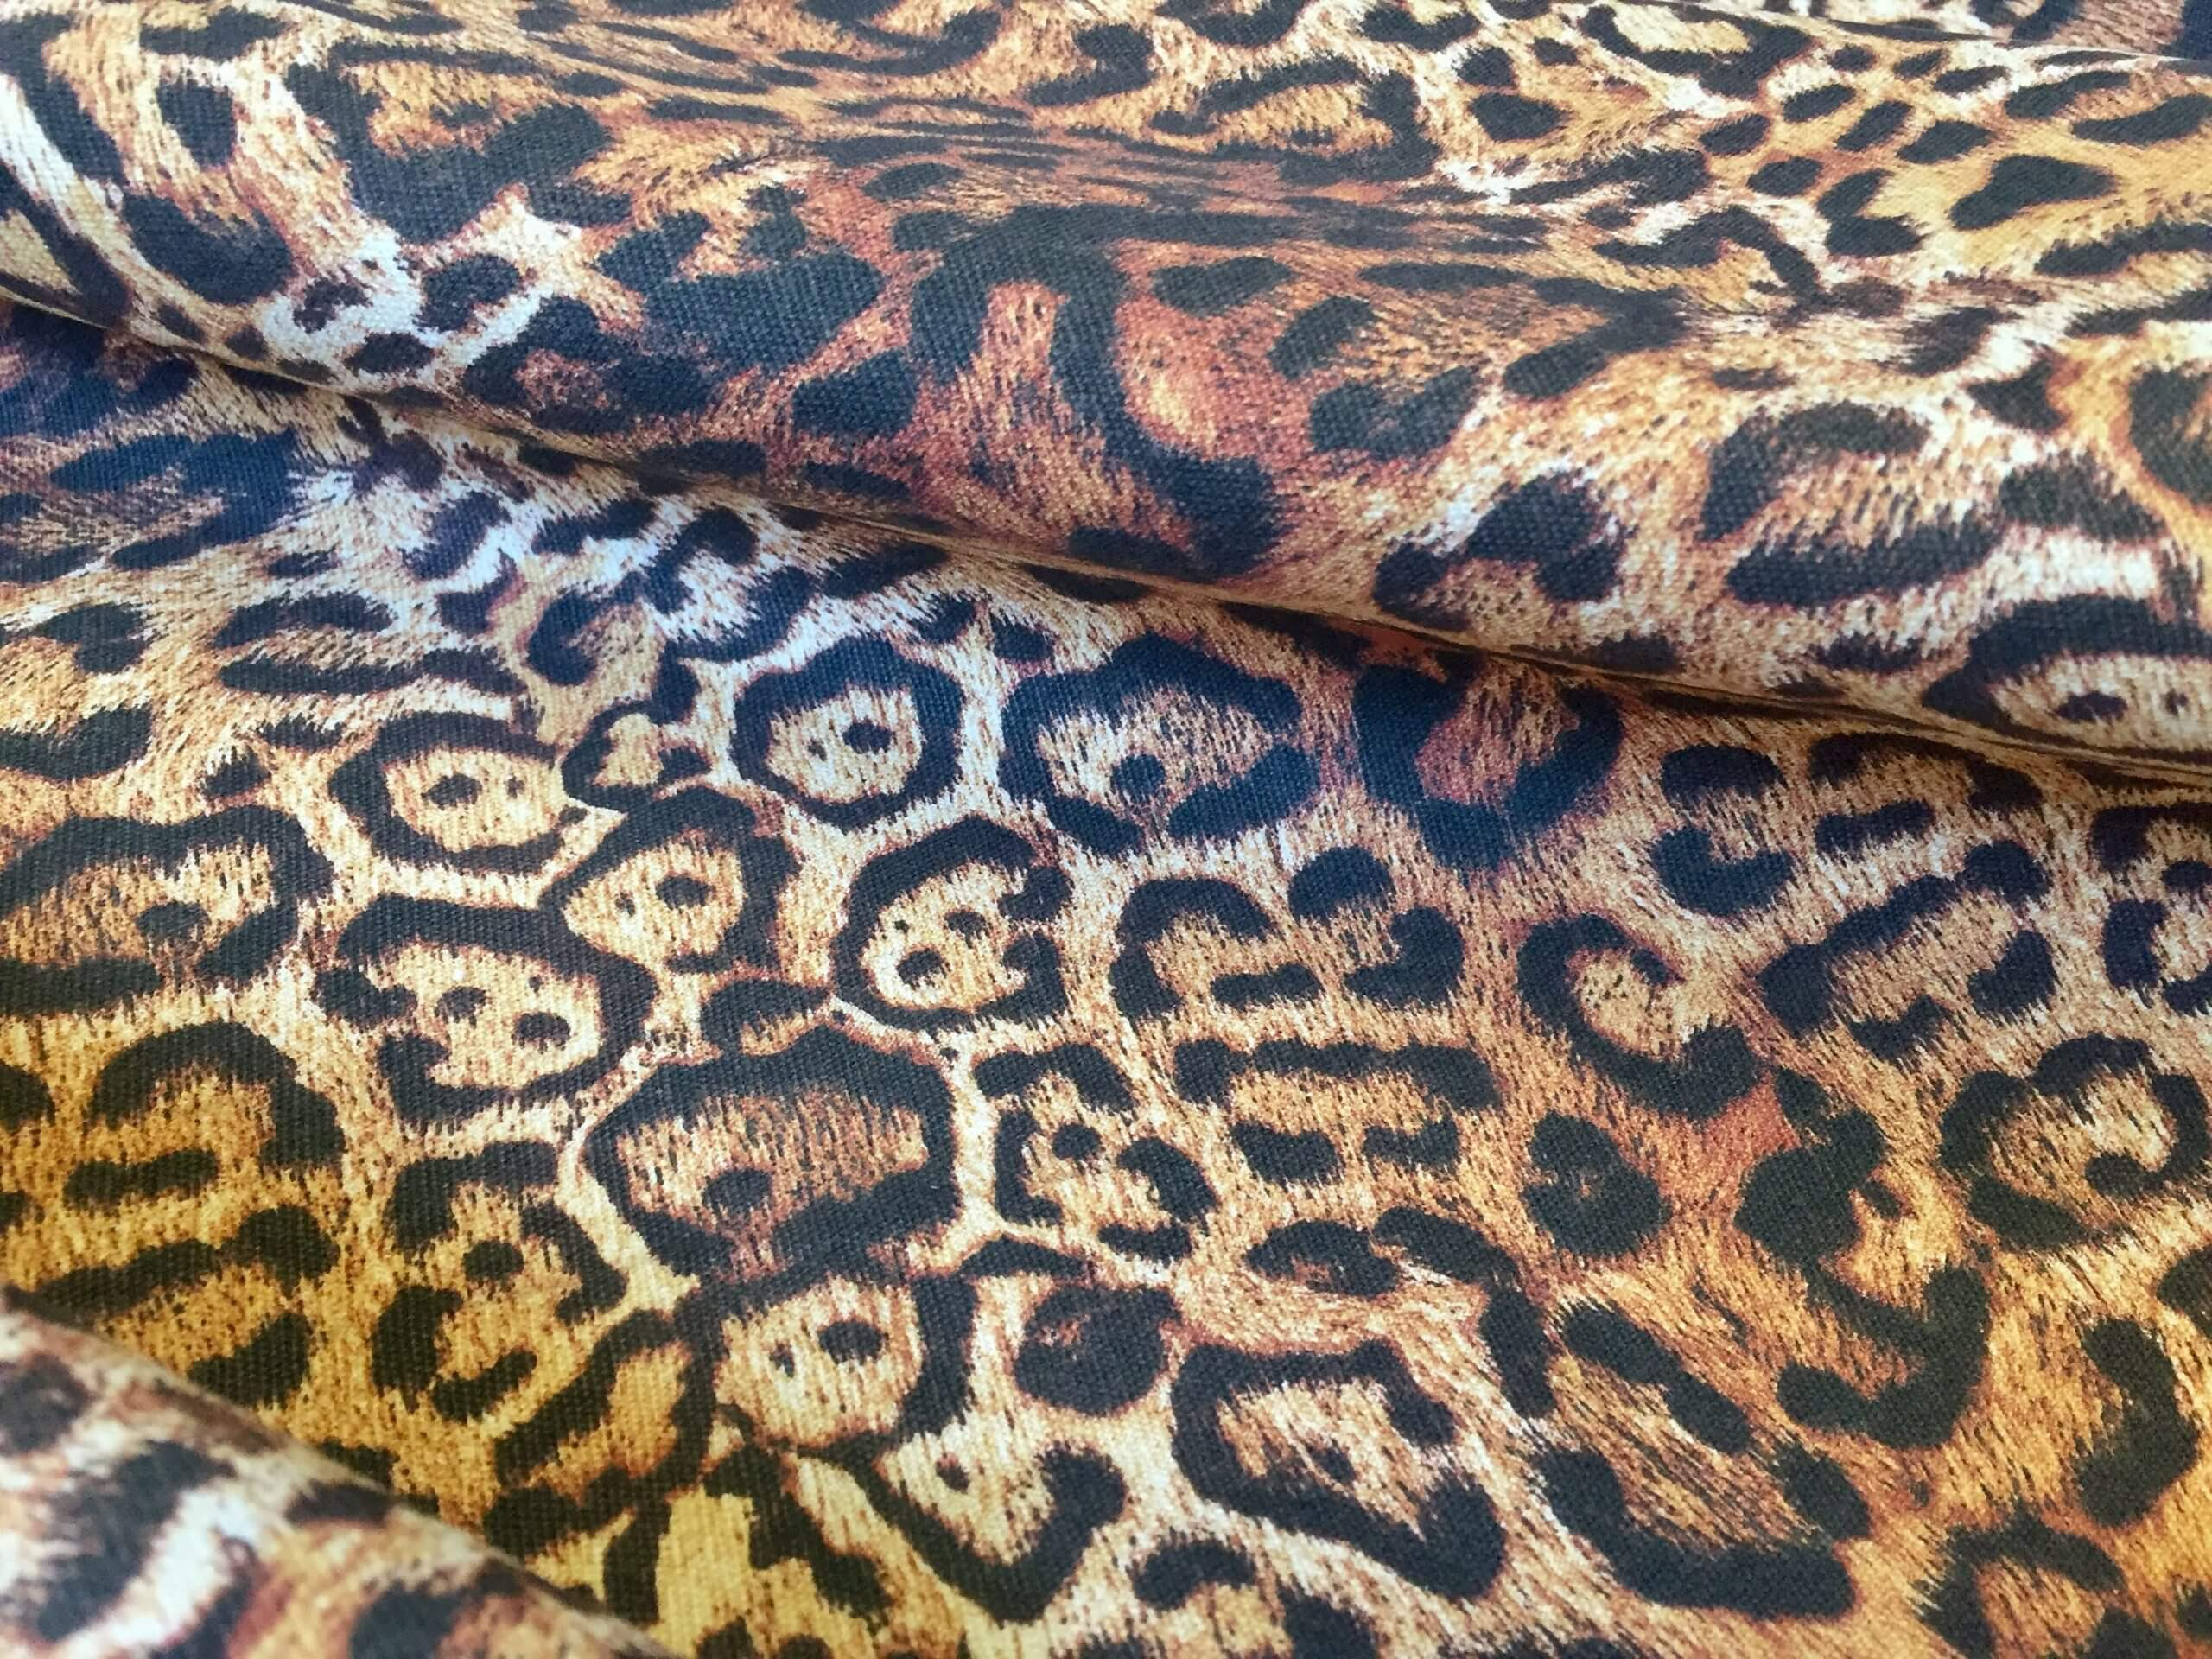 panther-leopard-print-cotton-fabric-material-animal-print-canvas-for-curtains-upholstery-dress-55-or-140cm-wide-5b1bf8961.jpg